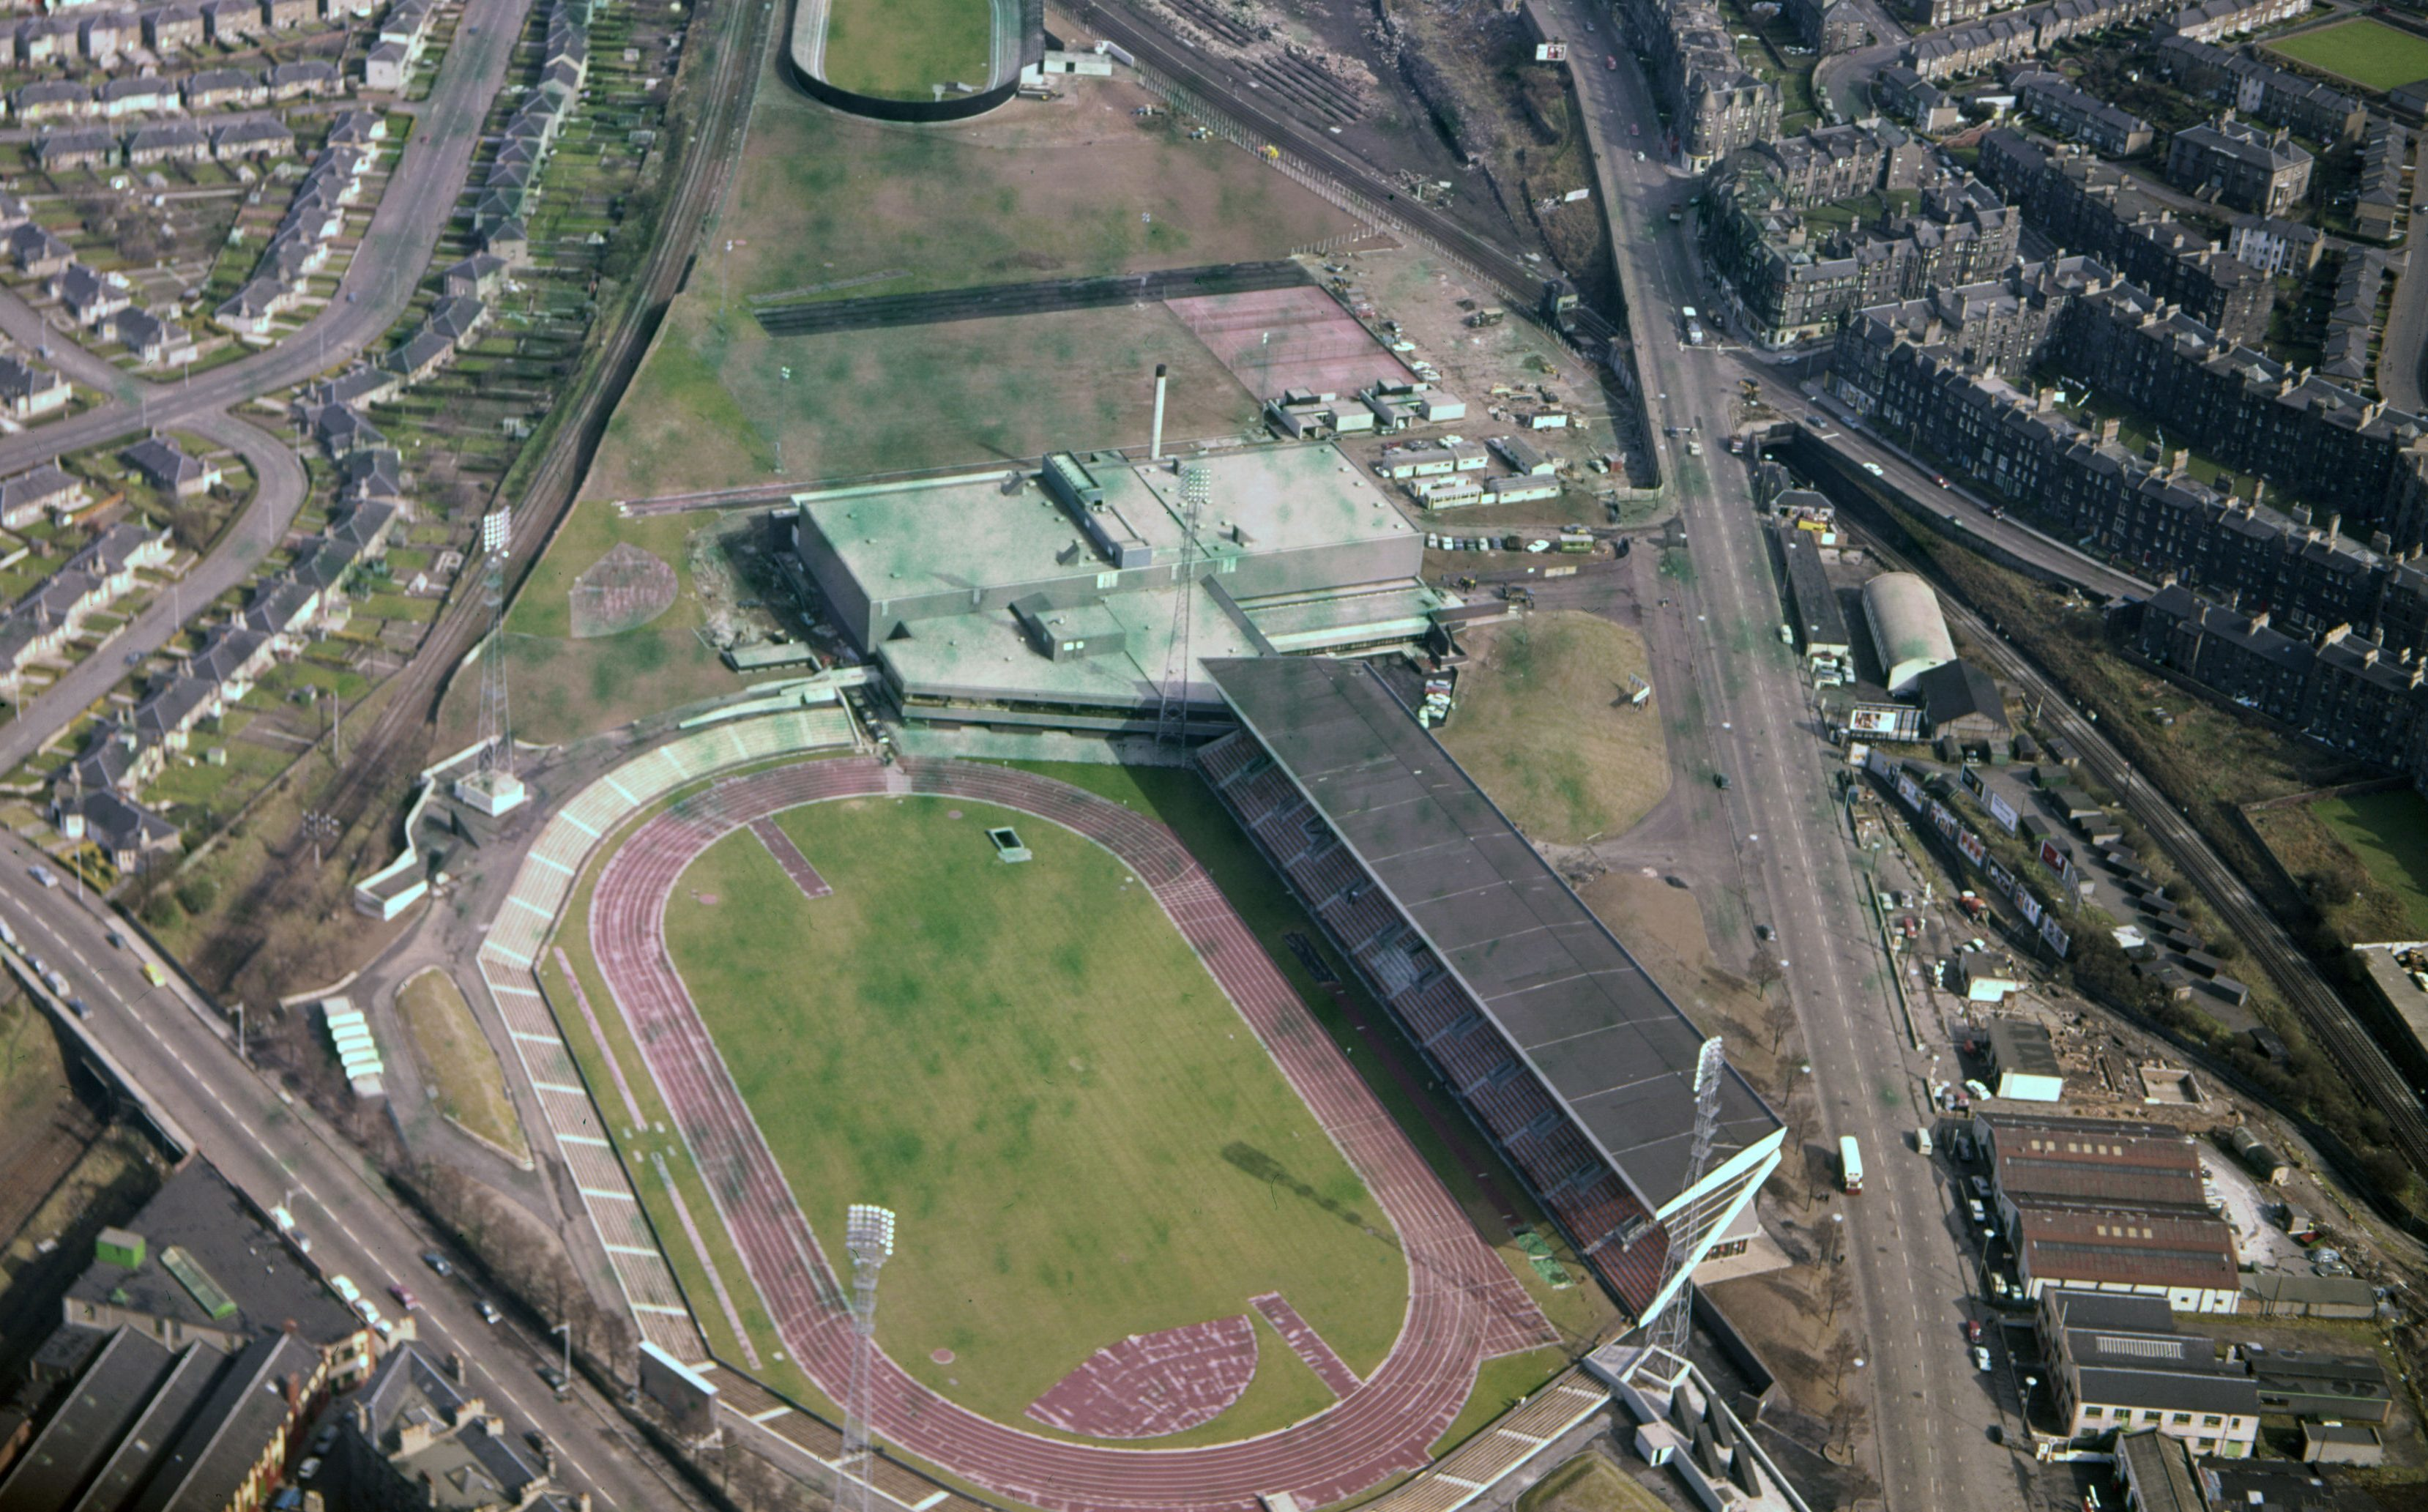 File photo dated 01/04/1970 of the then newly-built Meadowbank Stadium (bottom) and cycle track (top) in Edinburgh. (PA Wire)